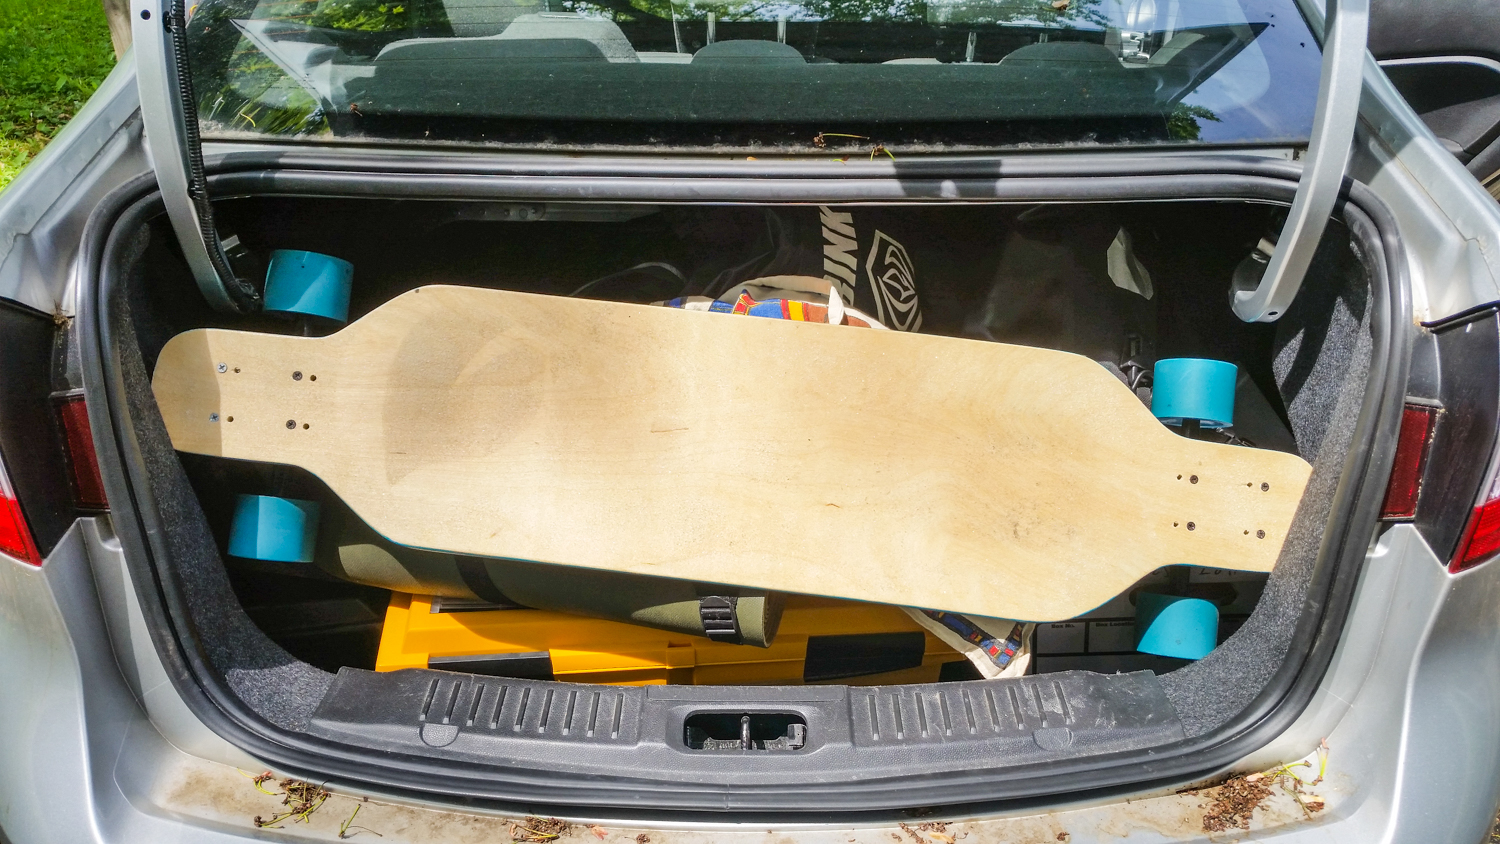 Yes, we took the longboard, no Teysia has never used it since 2014. It's at my mother's house now (we brought it back from Seattle, too).